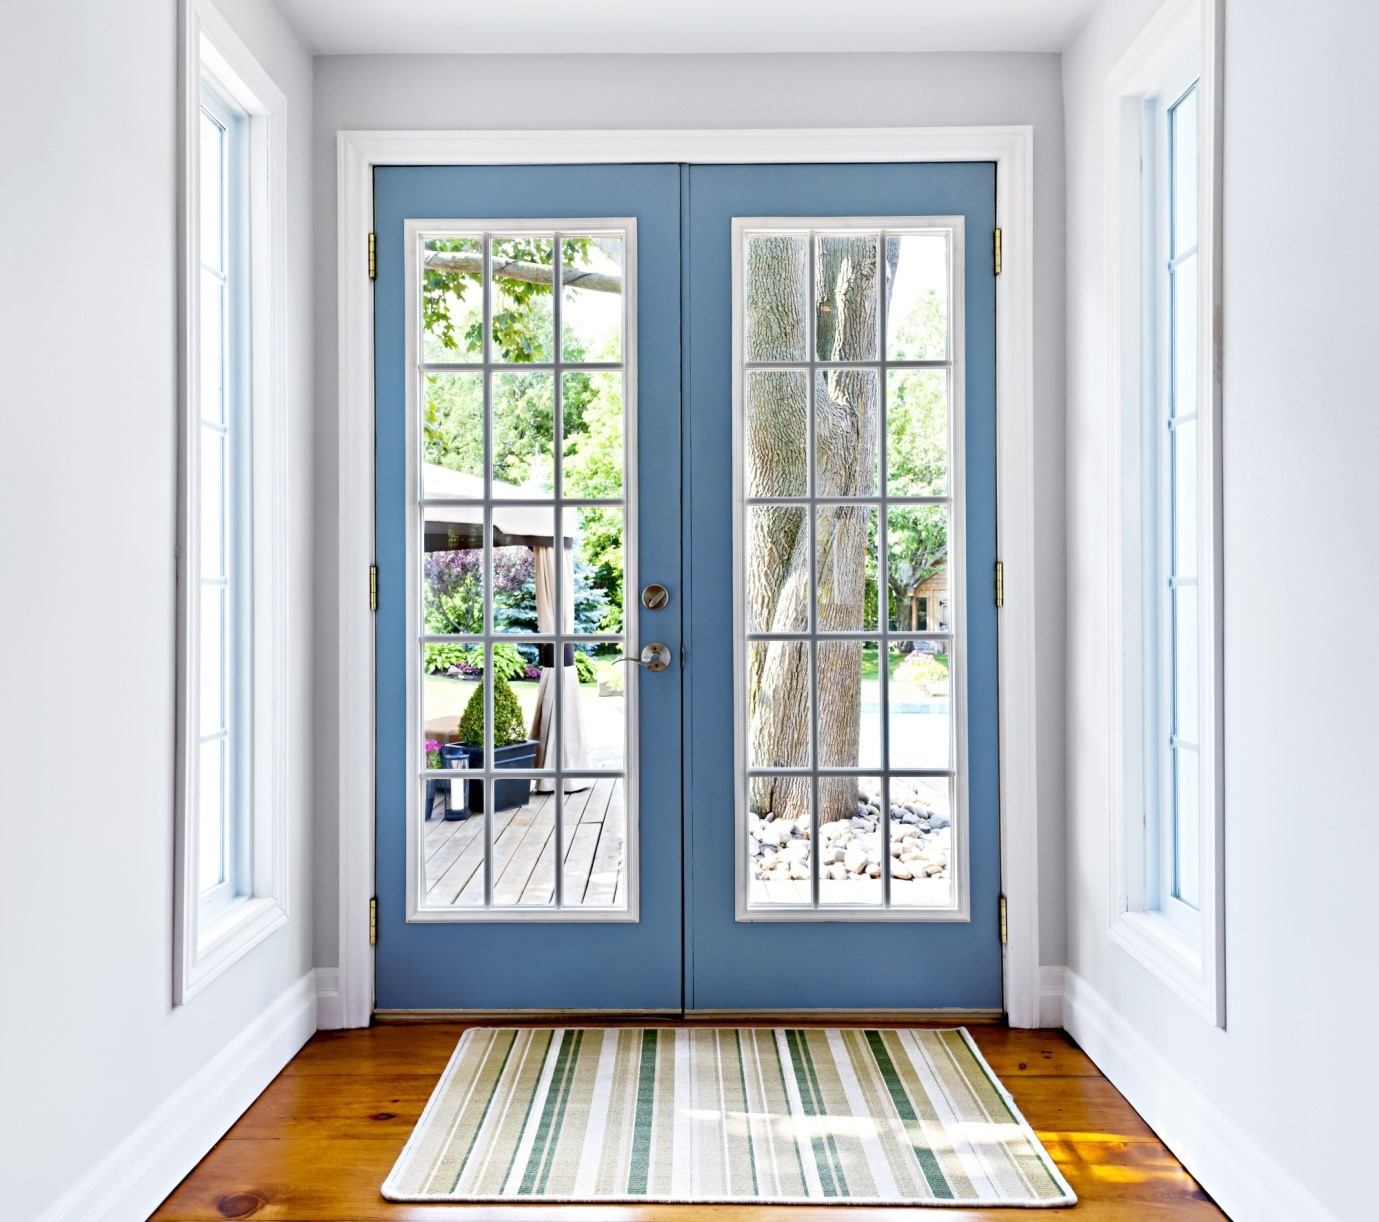 Exterior French Doors: Are They Right for You?